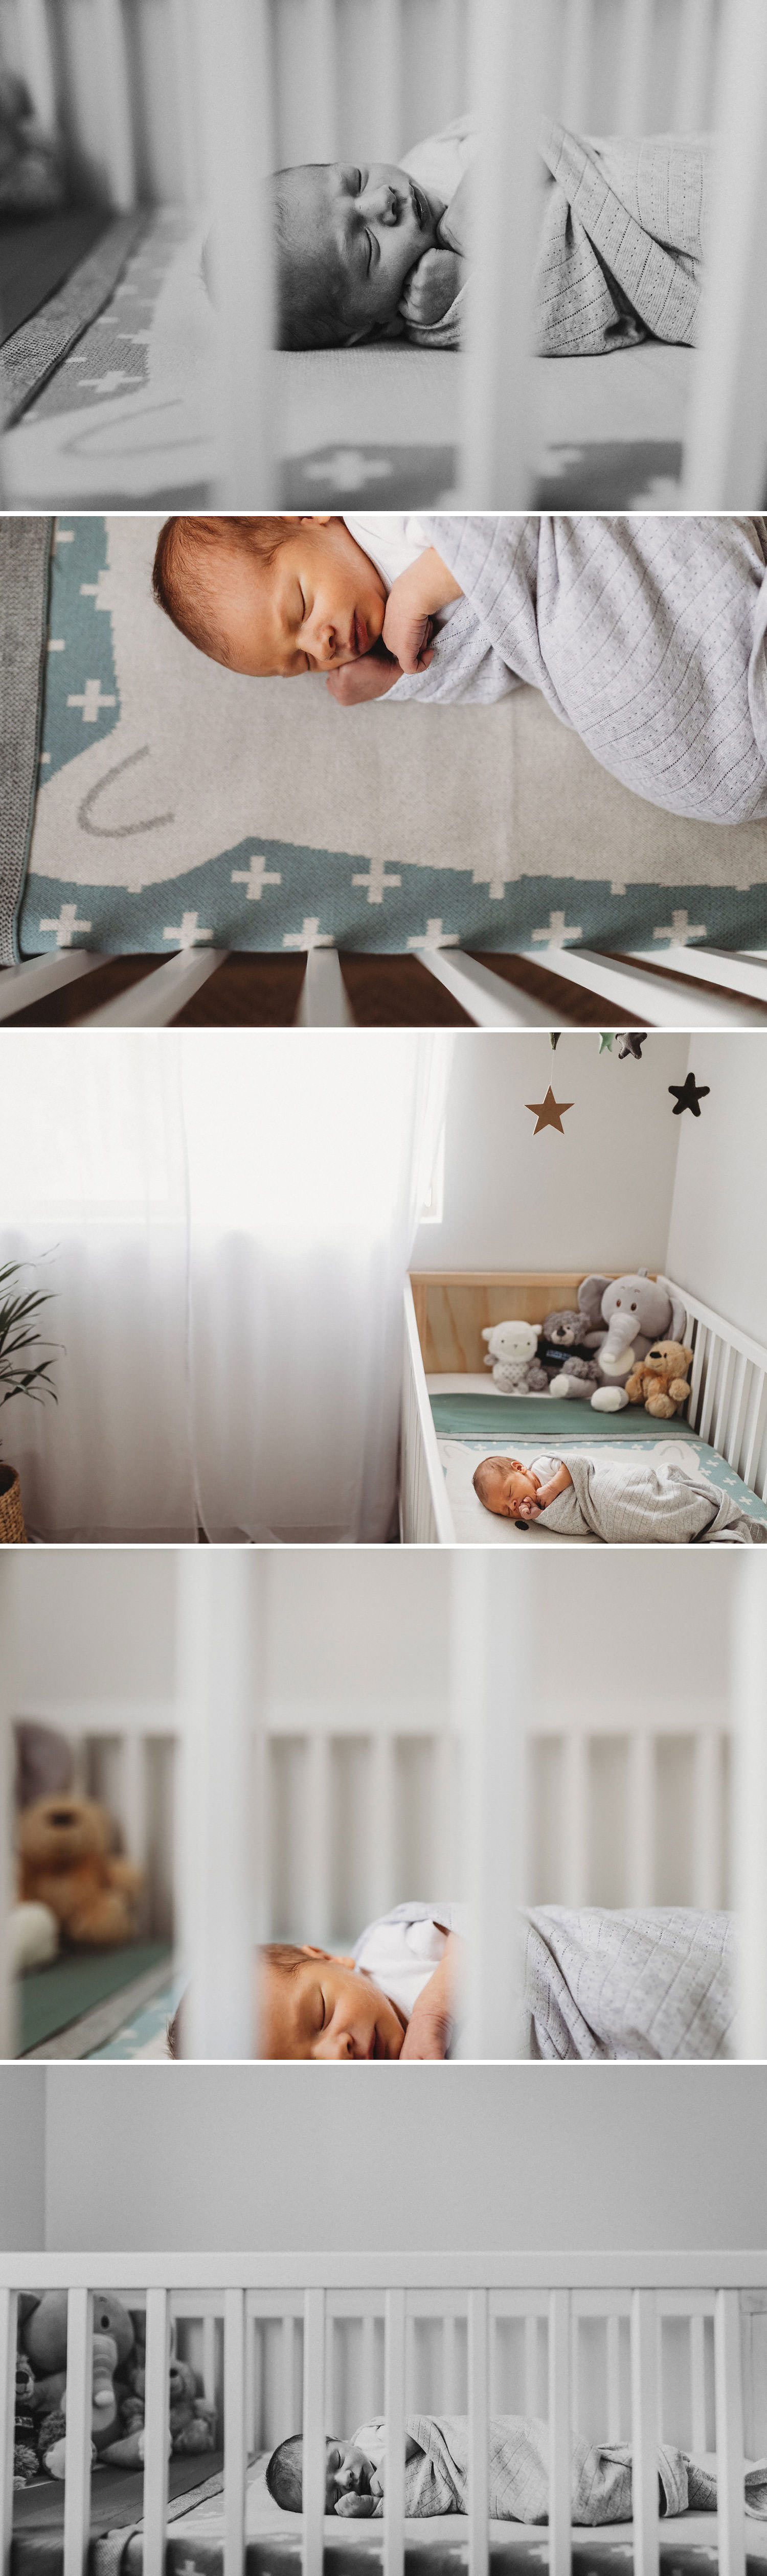 Newborn Photographer Sydney in home lifestyle